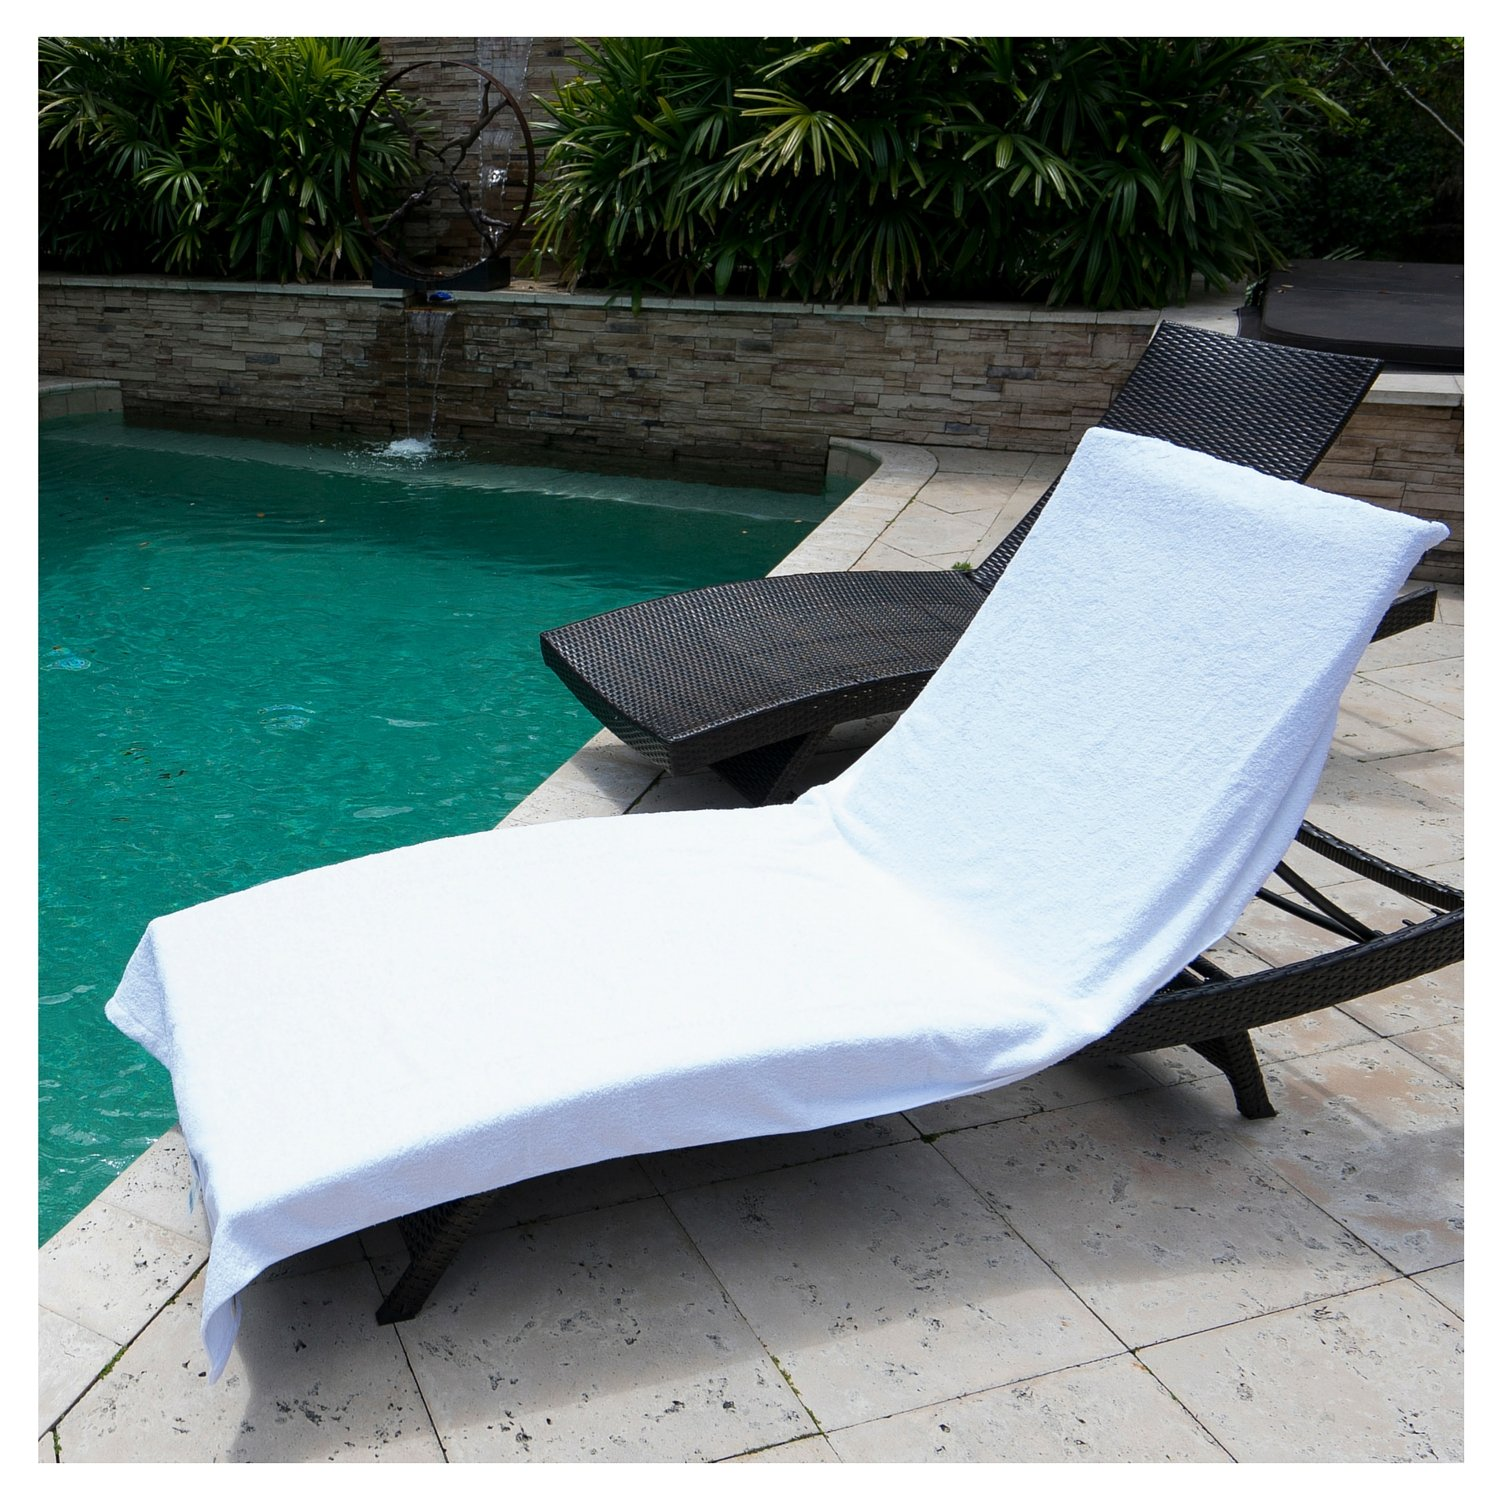 Temperate Super Soft Microfiber Beach Chair Cover With Storage Pockets Towels Beach Towel Chaise Lounger Cover Towel Home